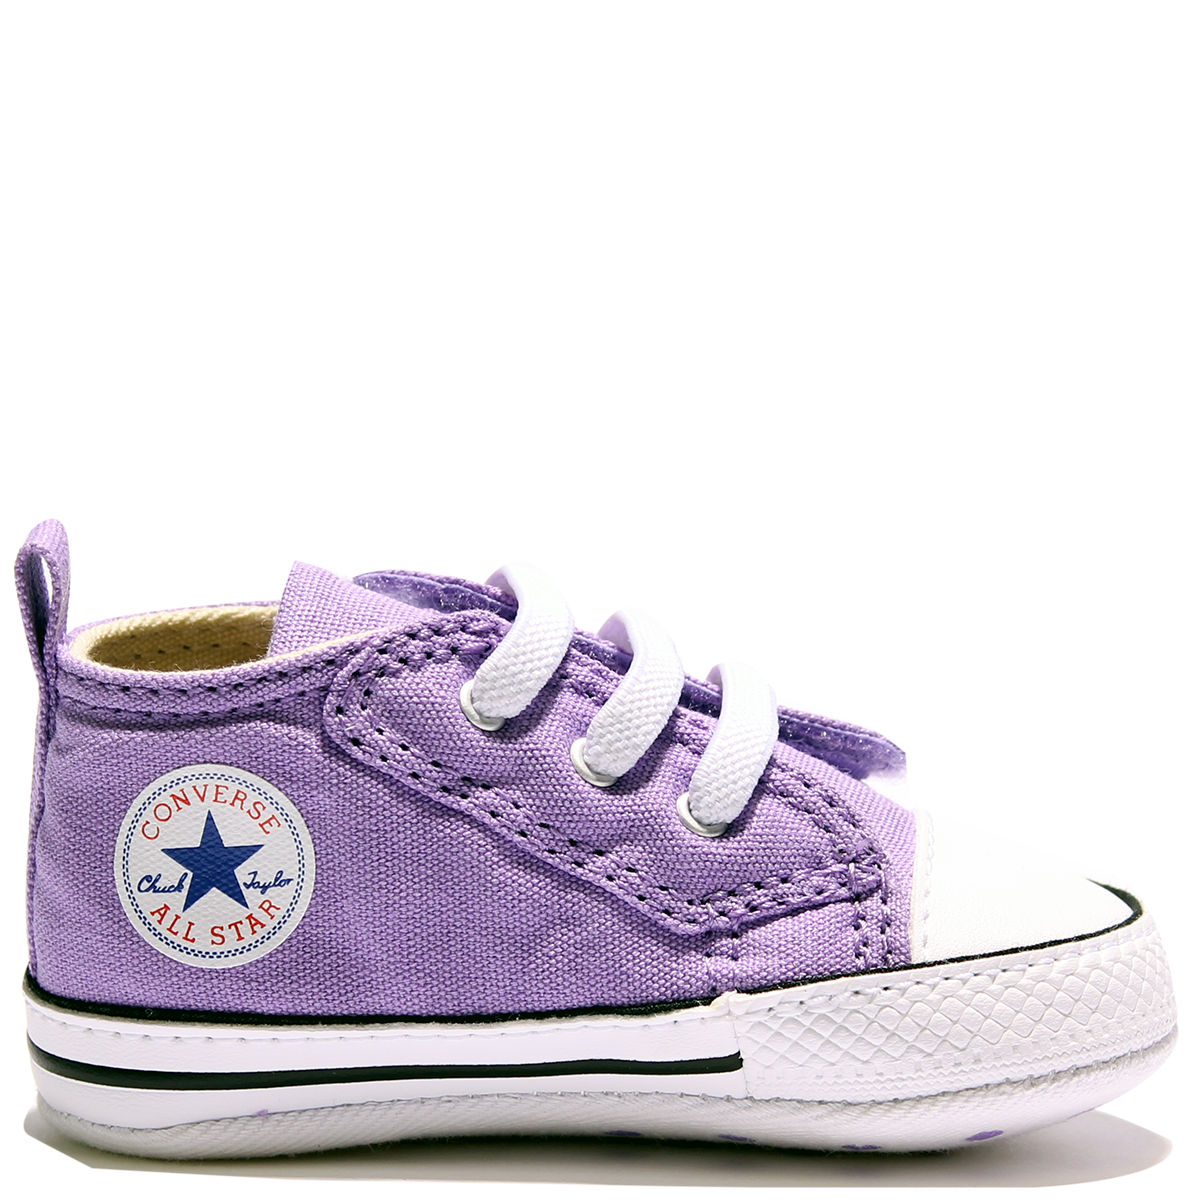 8c219d8bf636a2 Converse Crib CT First Star Easy Frozen Lilac Black White Infant 854007  Famous Rock Shop.